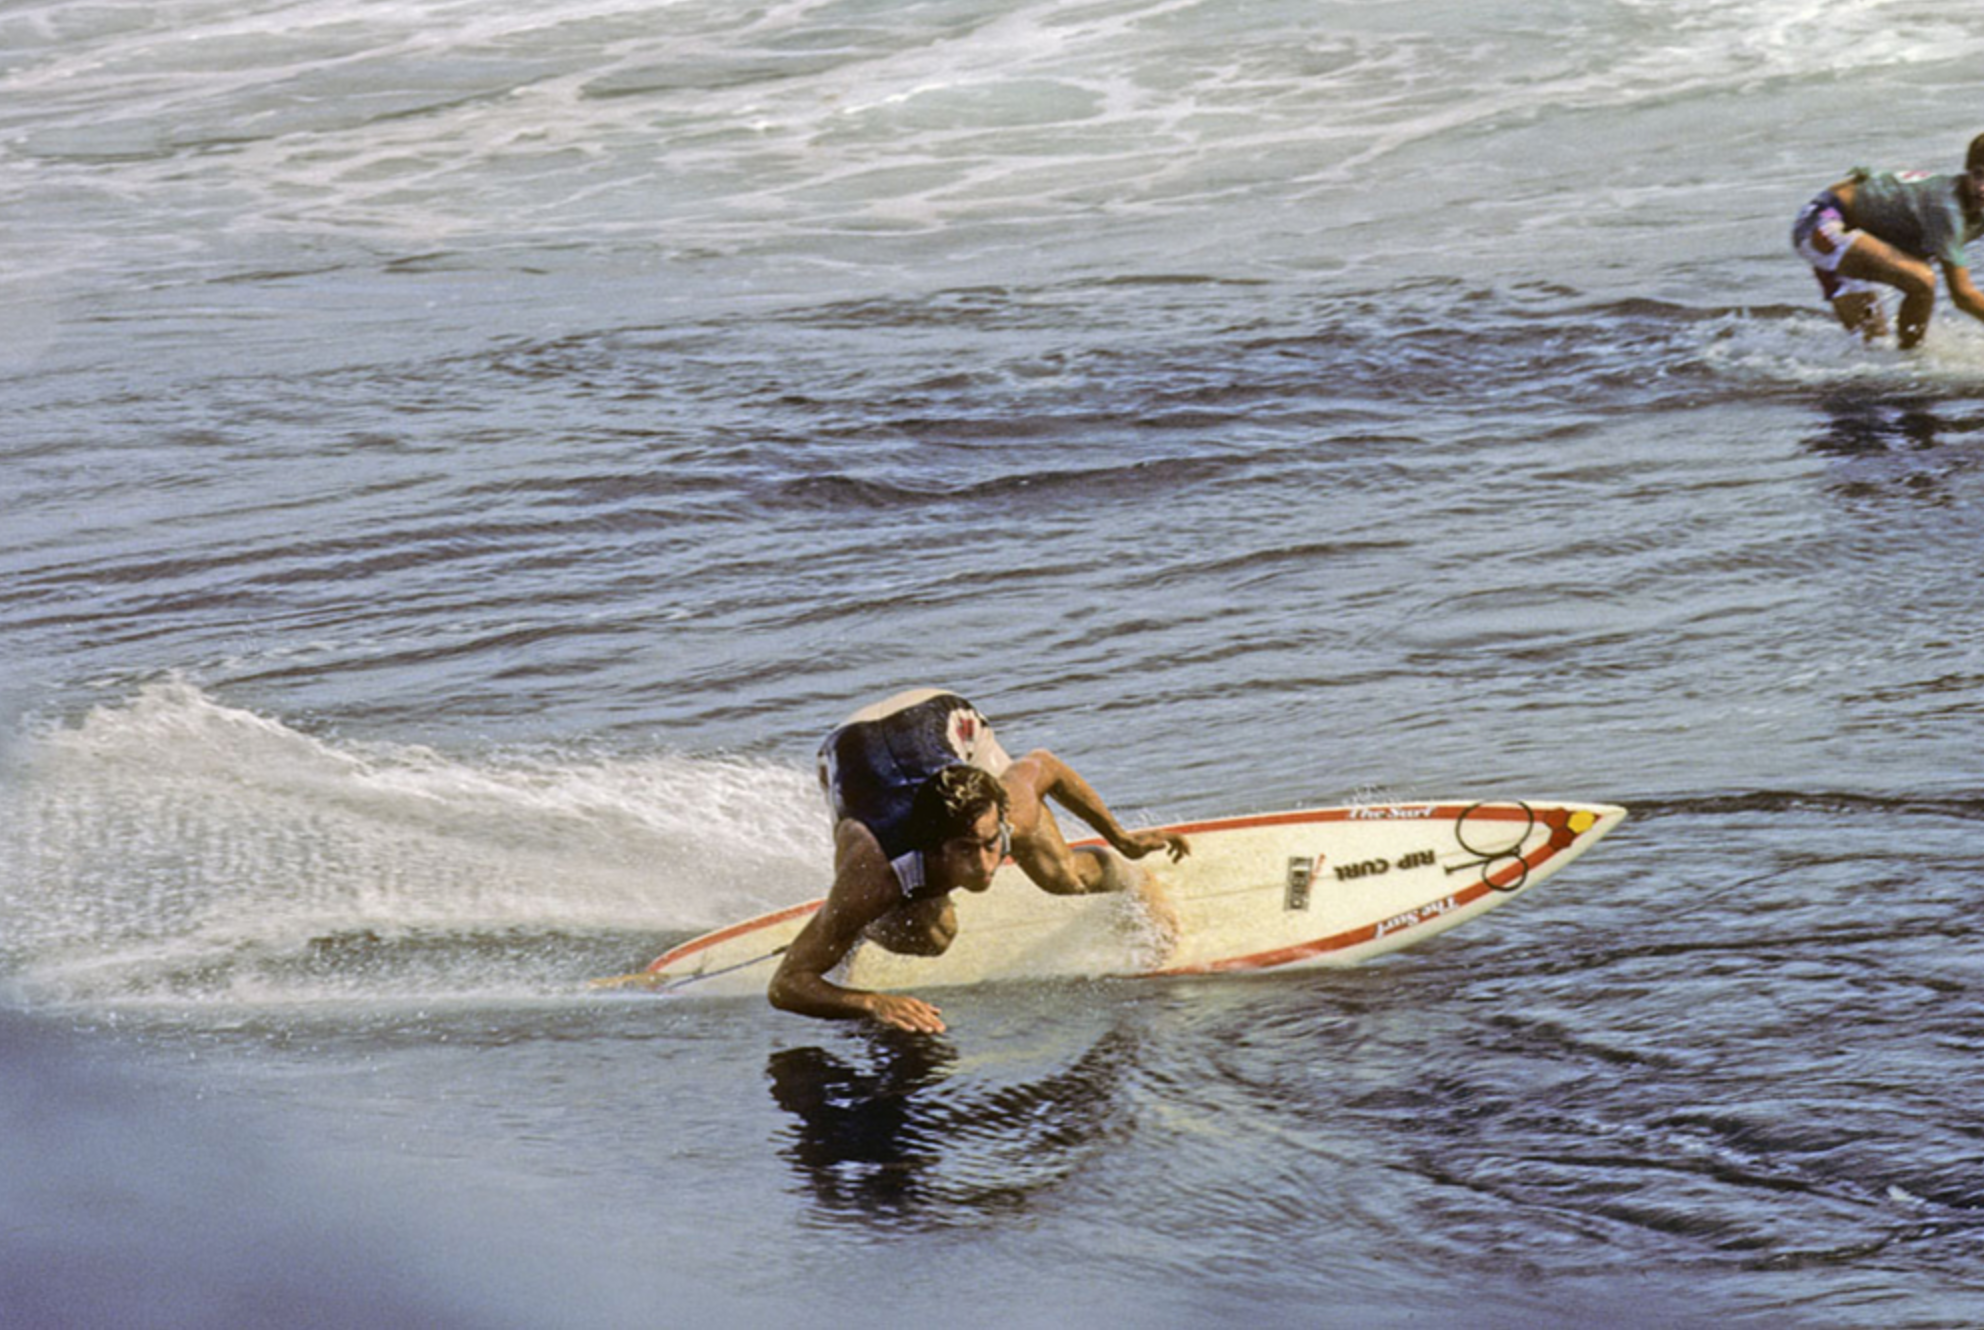 A classic look at Tom Curren's bottom turn from the top. Note his hands, knees, and how low he gets.